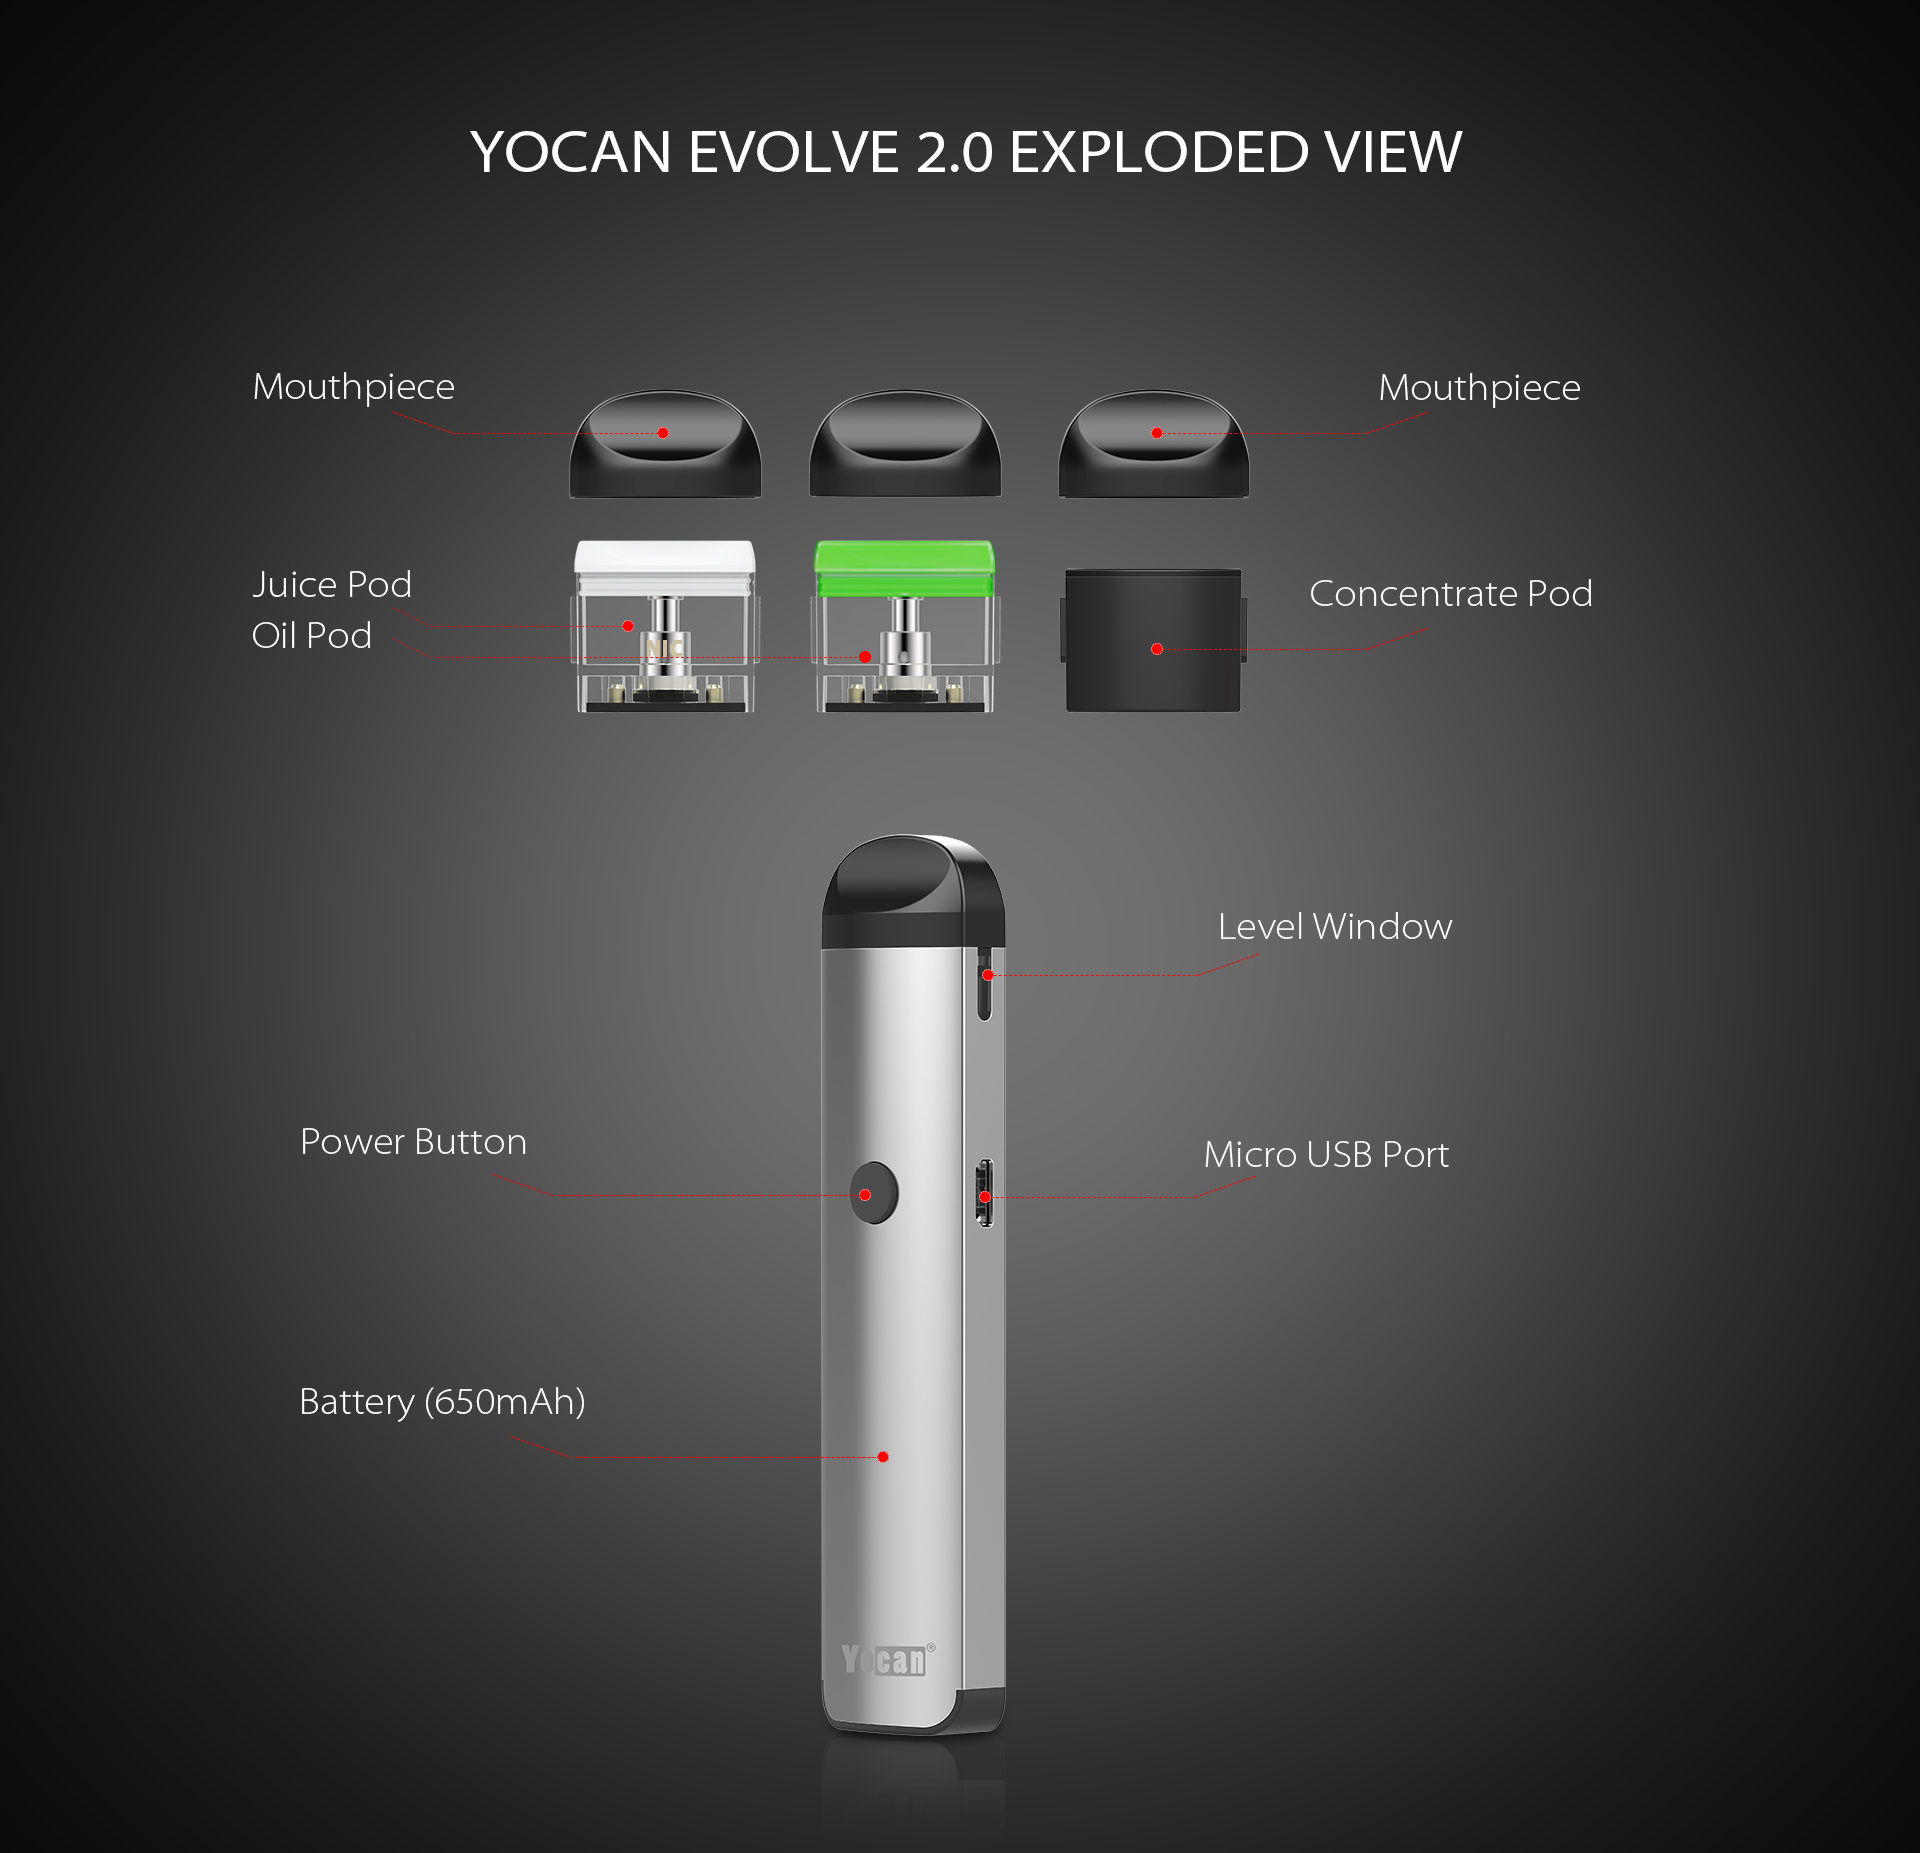 Yocan Evolve 2.0 Exploded View